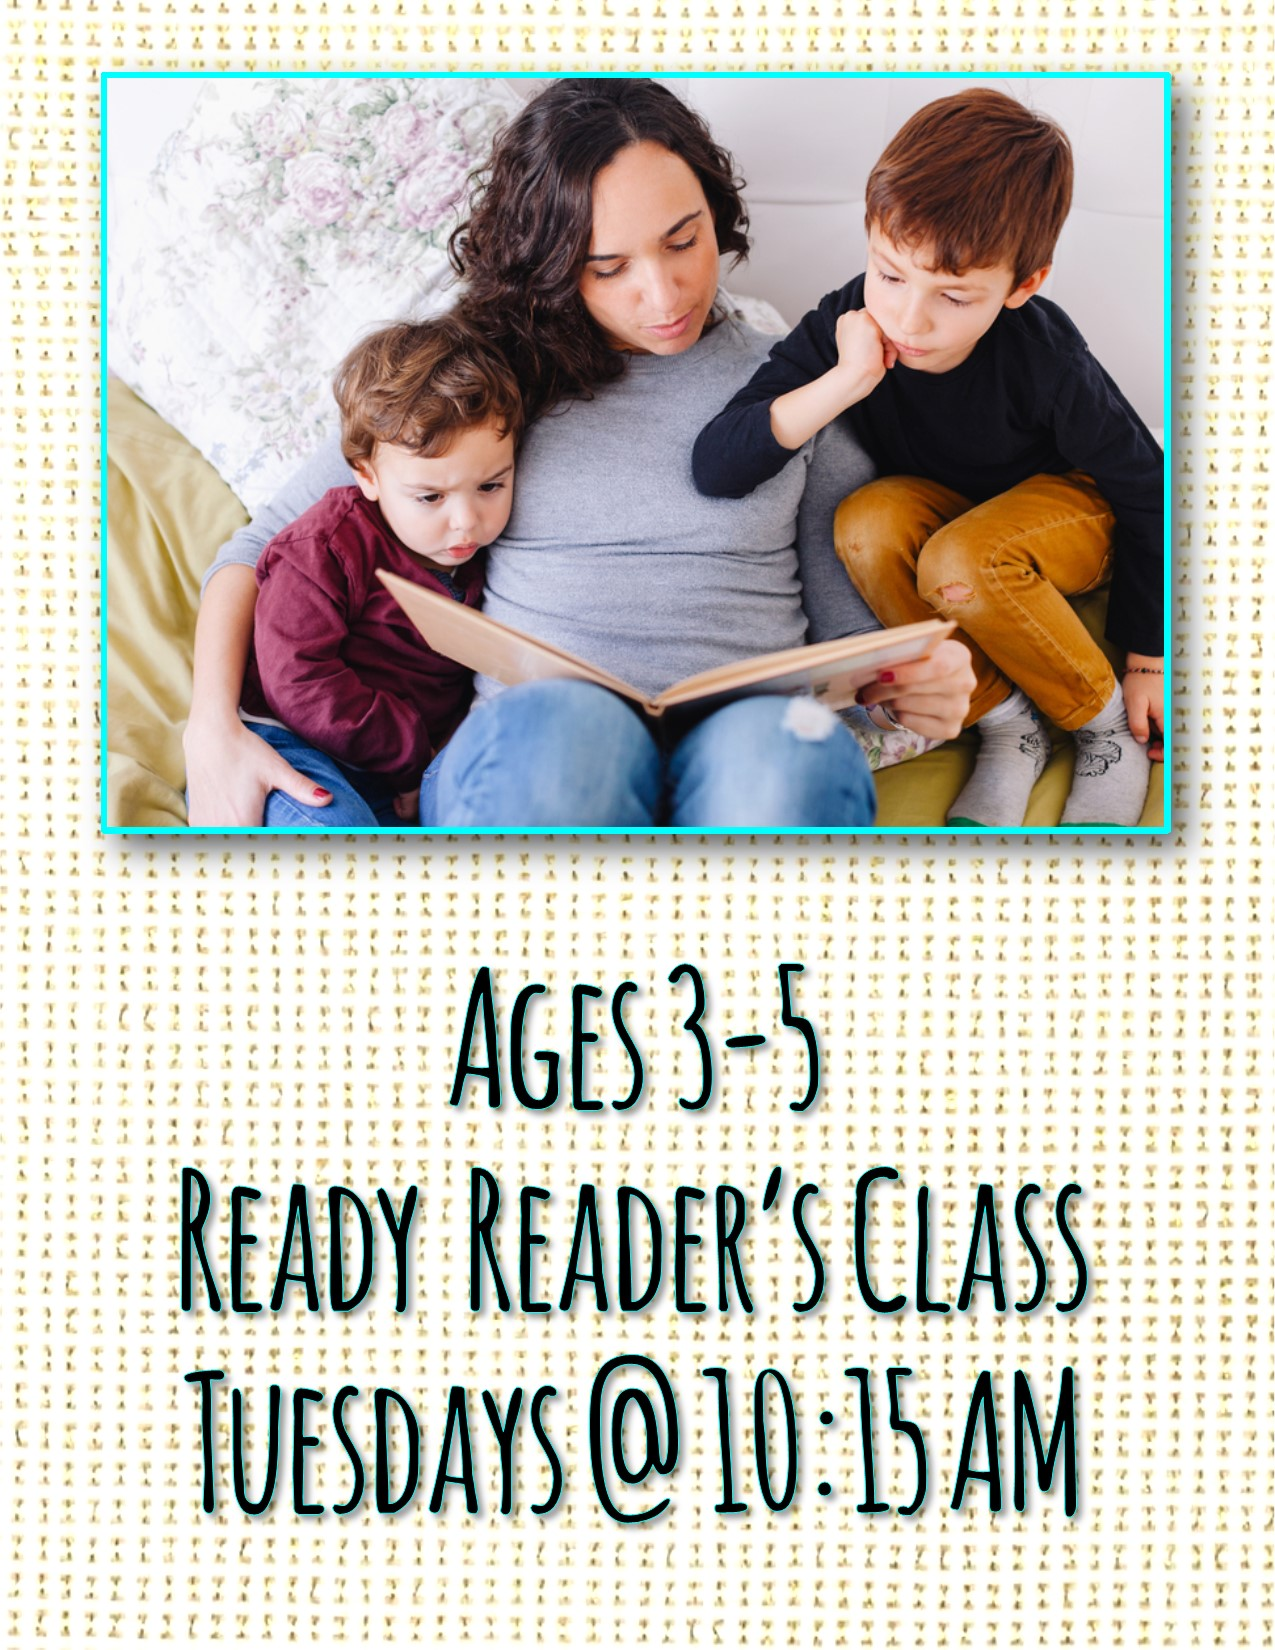 Ages 3-5 Ready Reader's Class